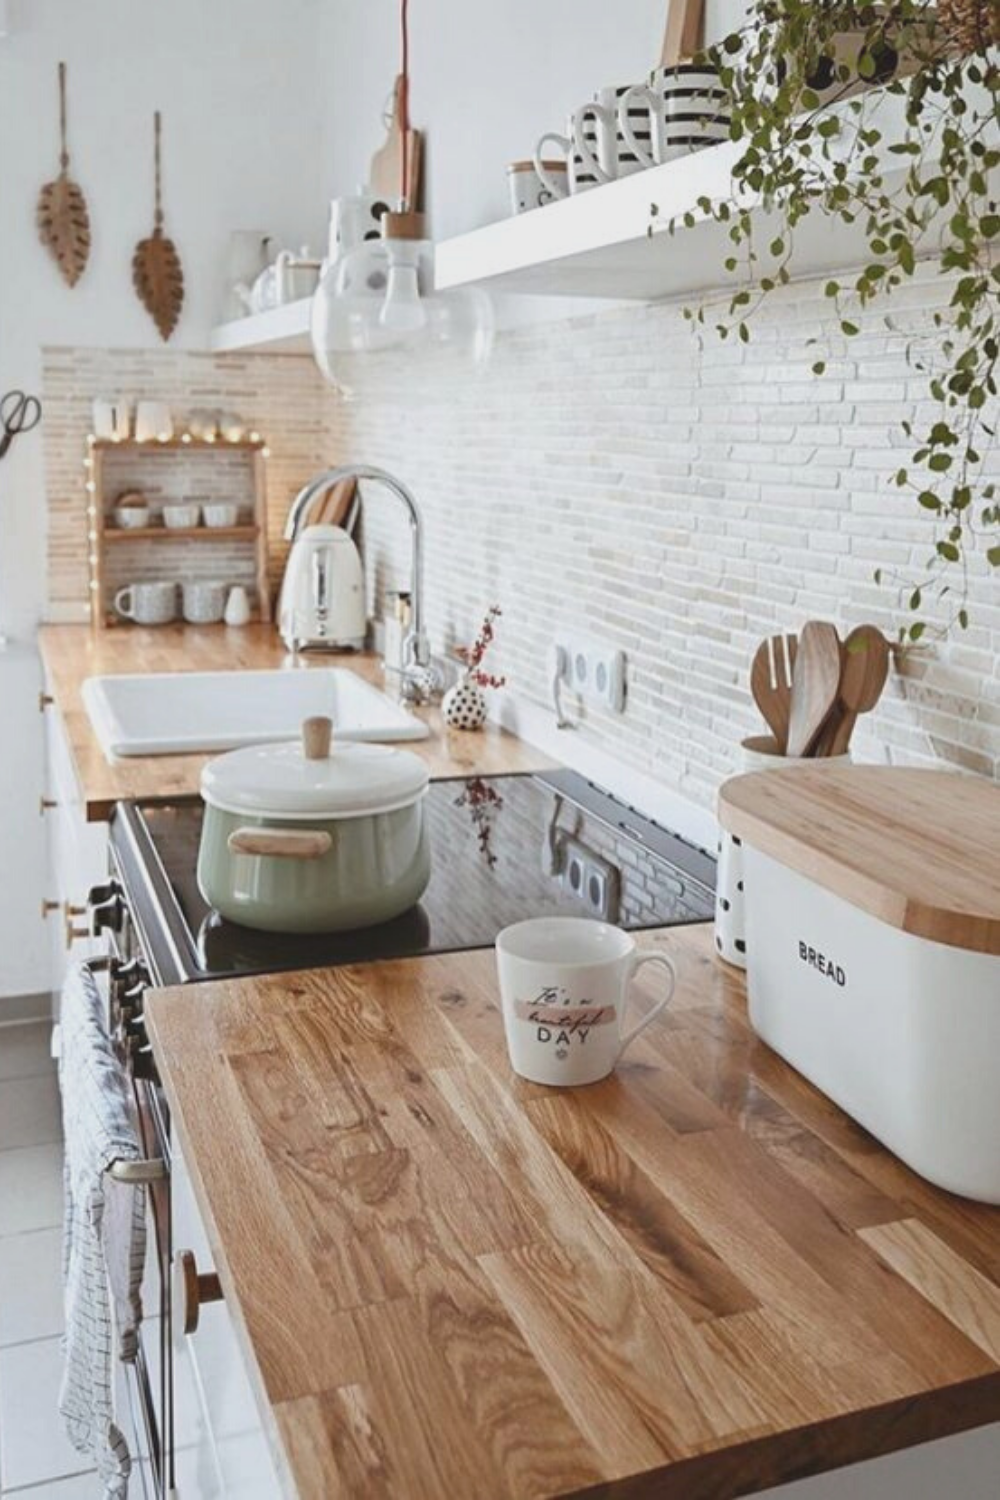 +60 Gorgeous Kitchen Design Ideas You'll Want to Steal